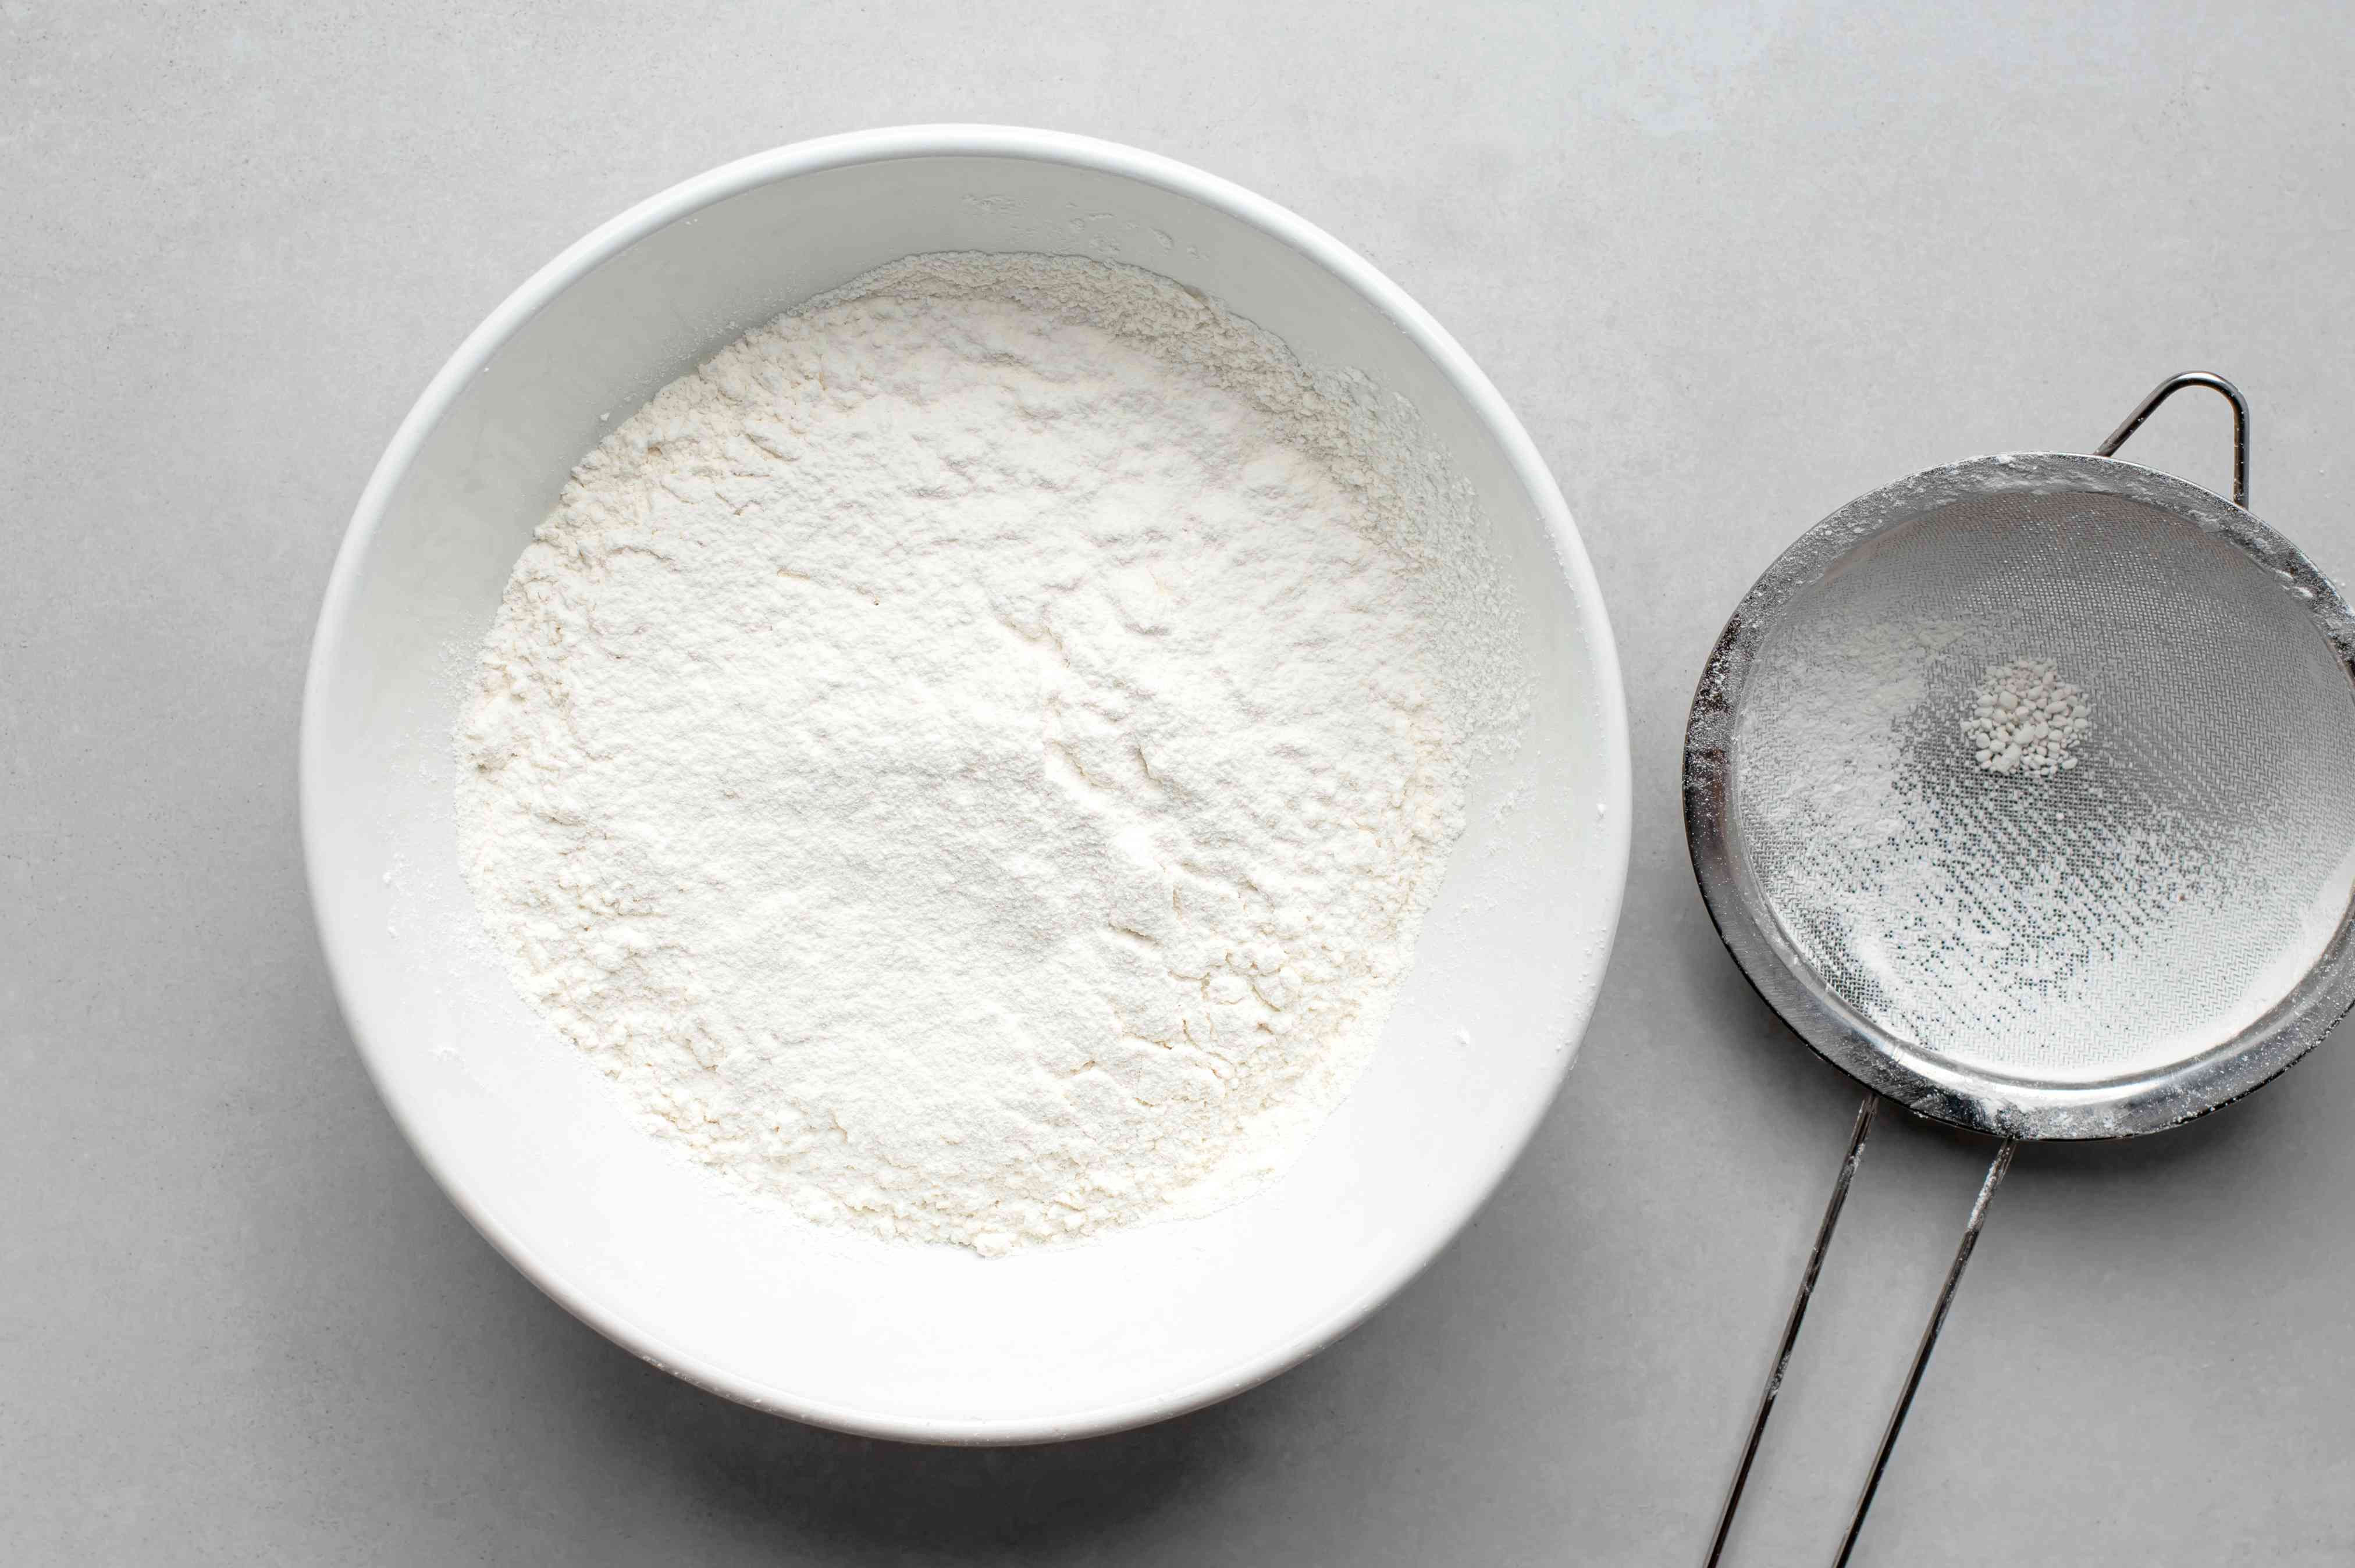 sift flour and salt in a bowl